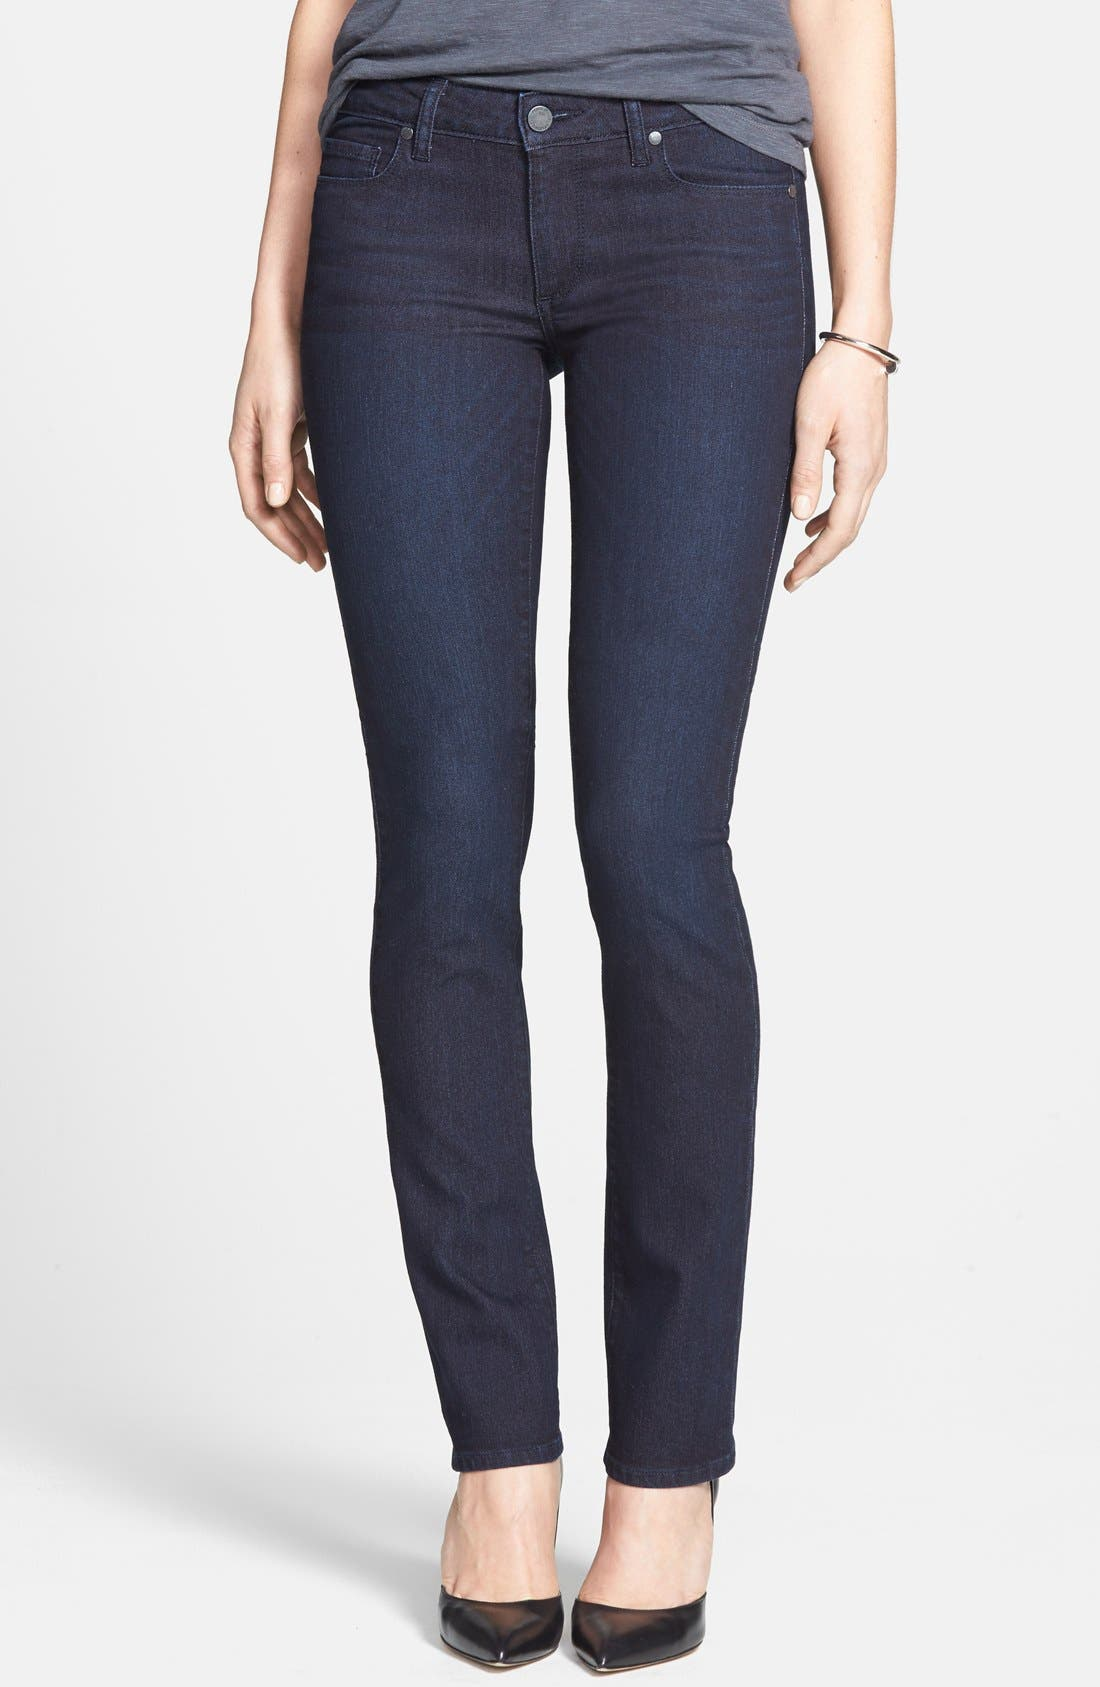 Alternate Image 1 Selected - Paige Denim 'Skyline' Straight Leg Jeans (Palmer) (Nordstrom Exclusive)